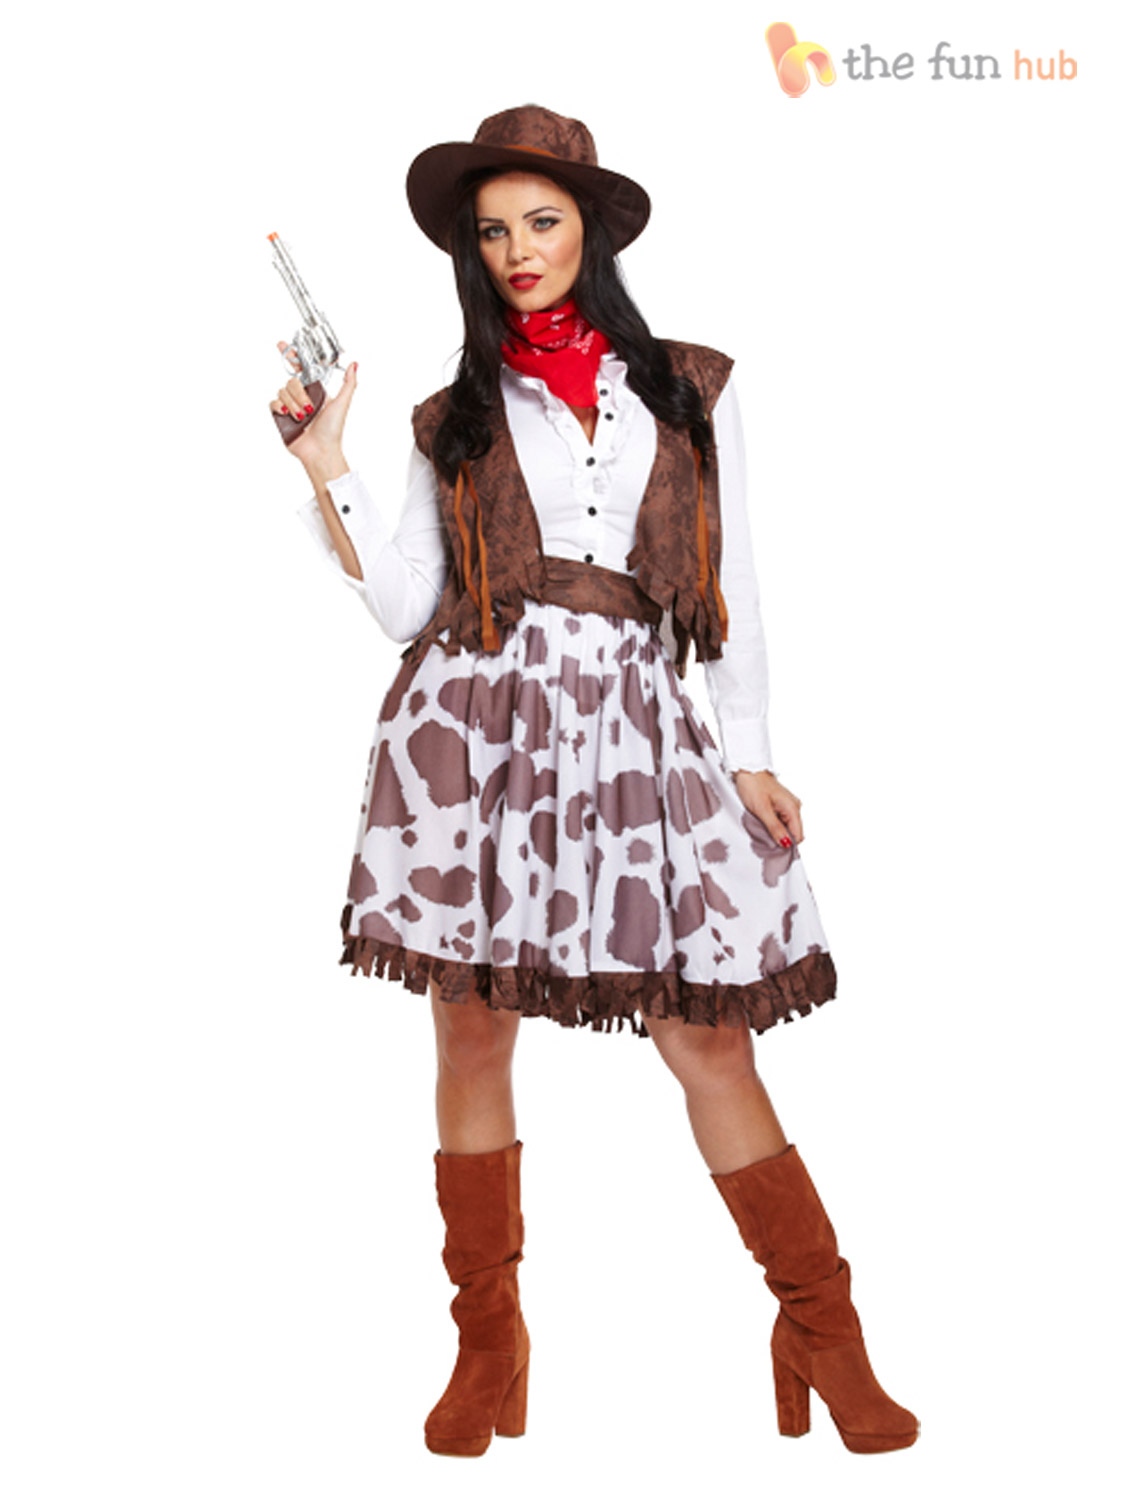 Not meaningful. cow girl fancy dress remarkable, rather